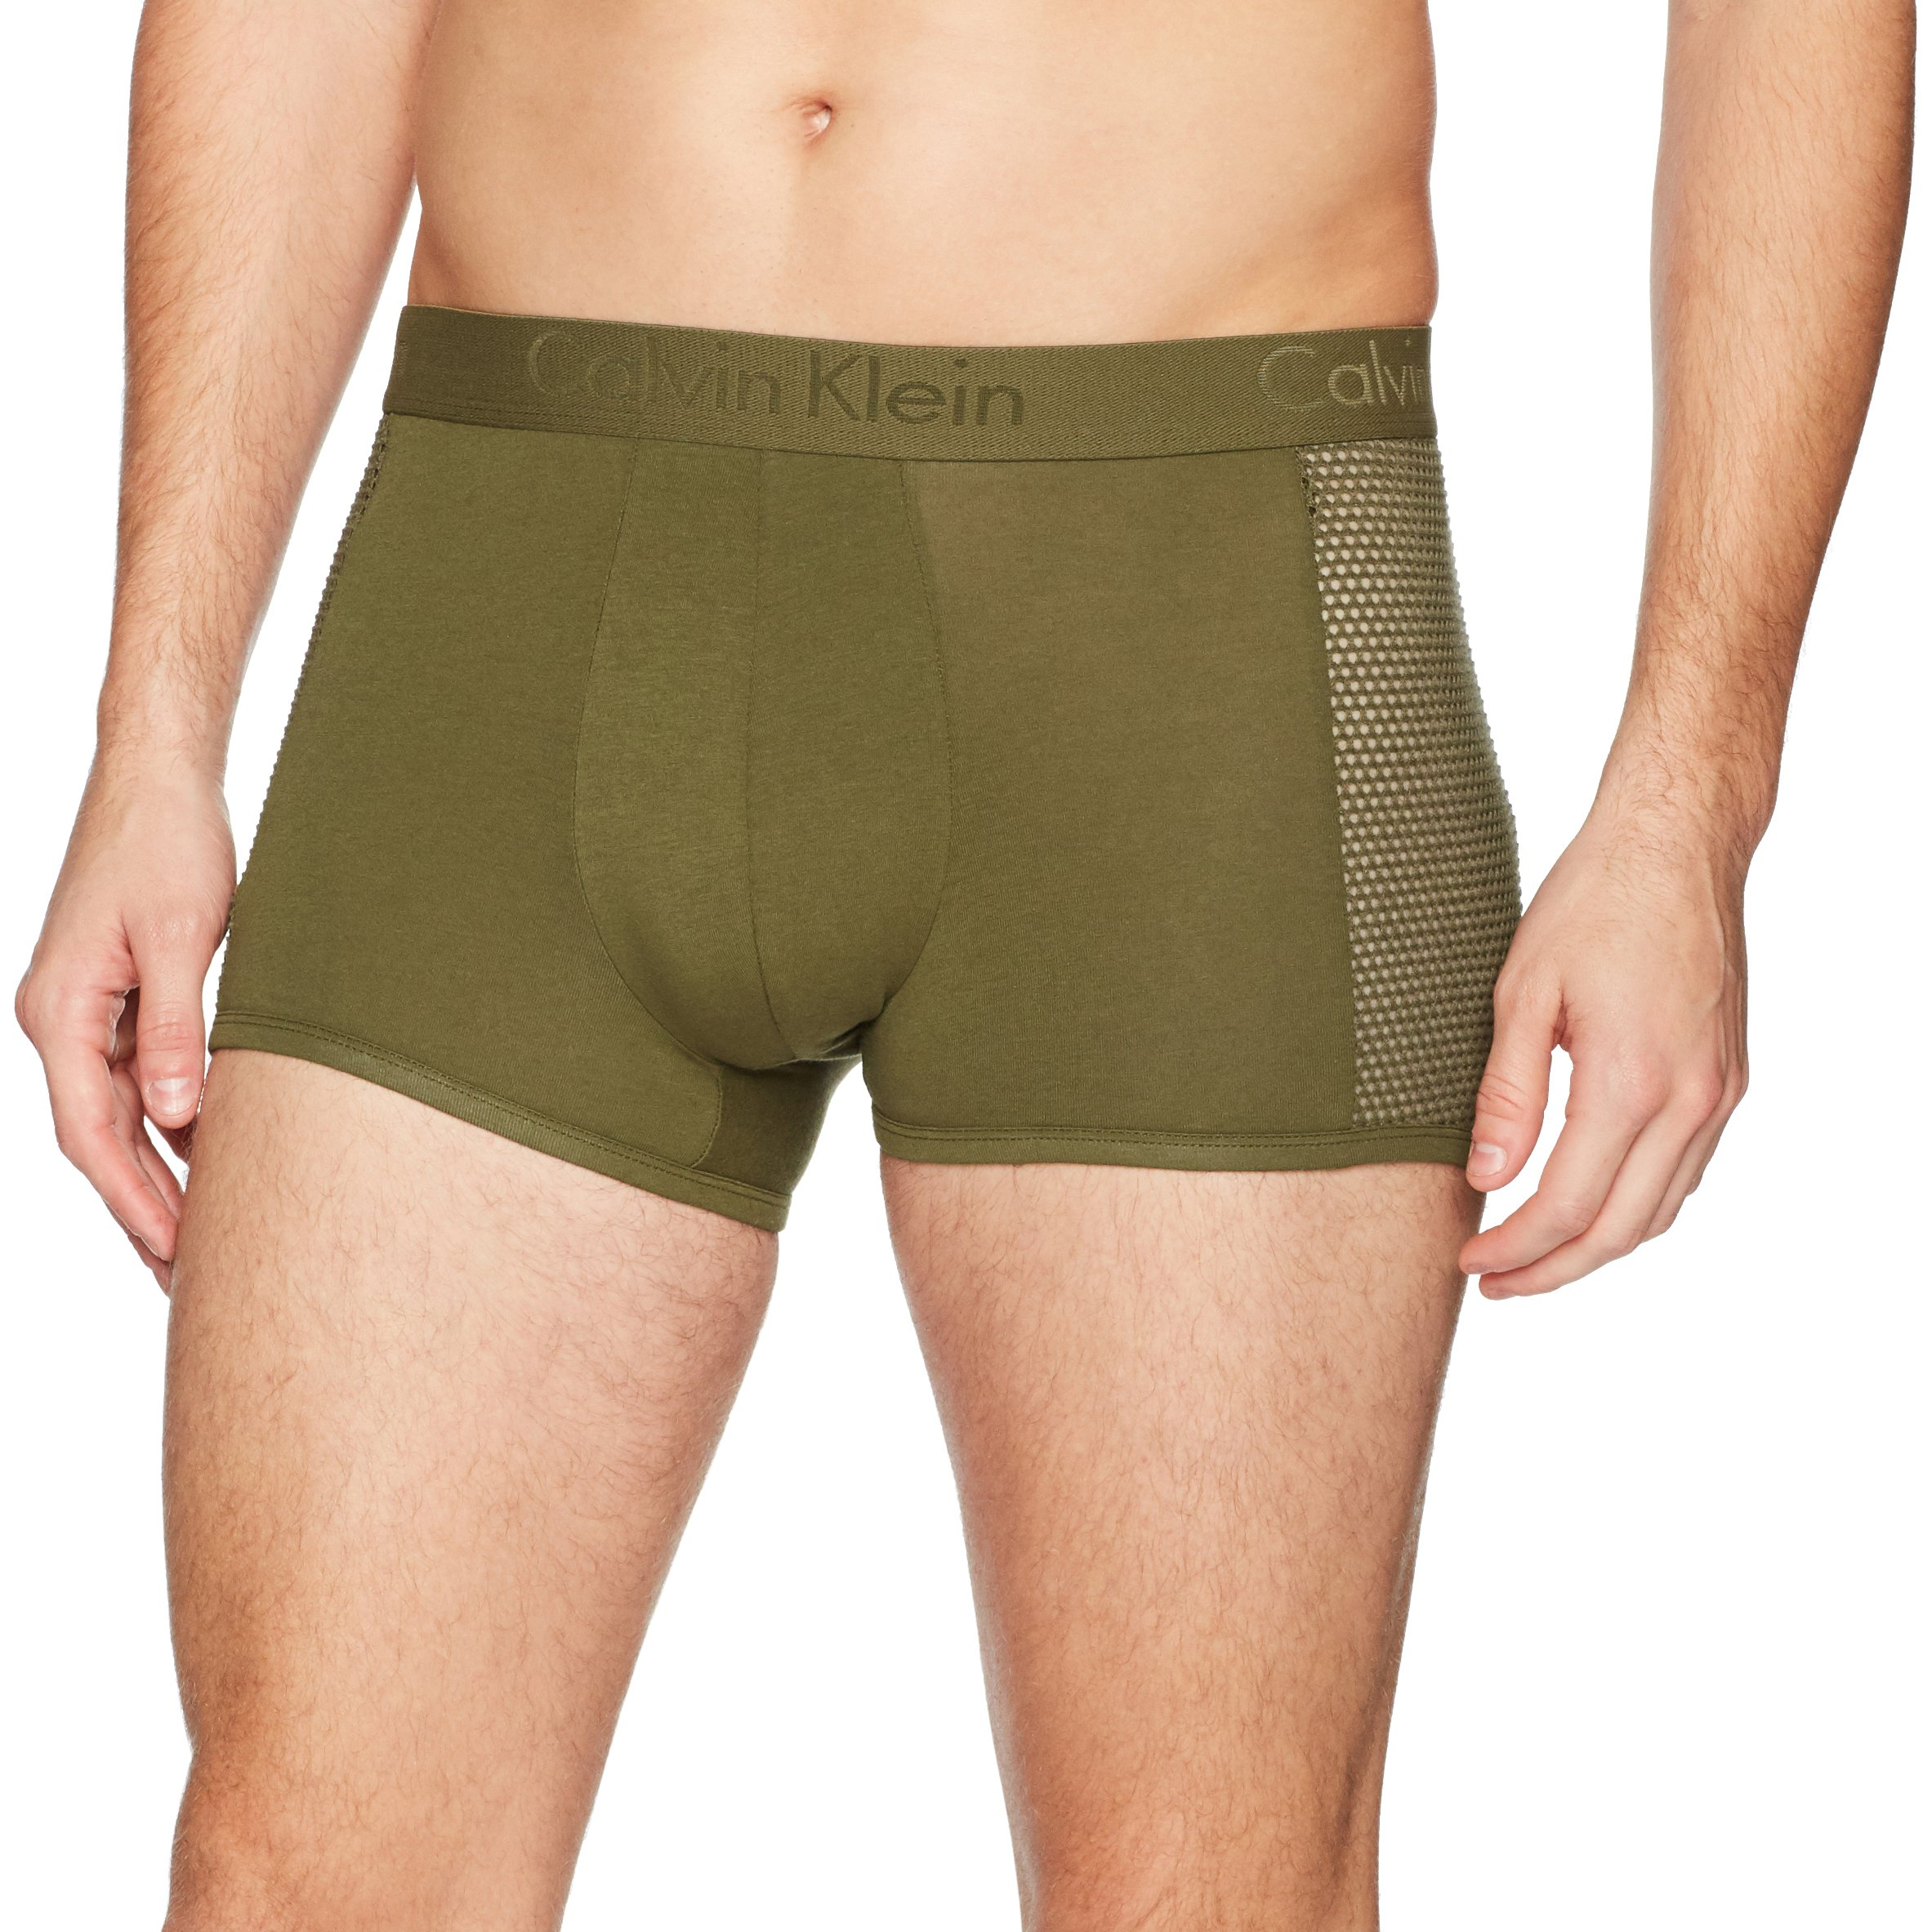 Calvin Klein Men's Underwear Body Mesh Trunks, Rifle Green, Small by Calvin Klein